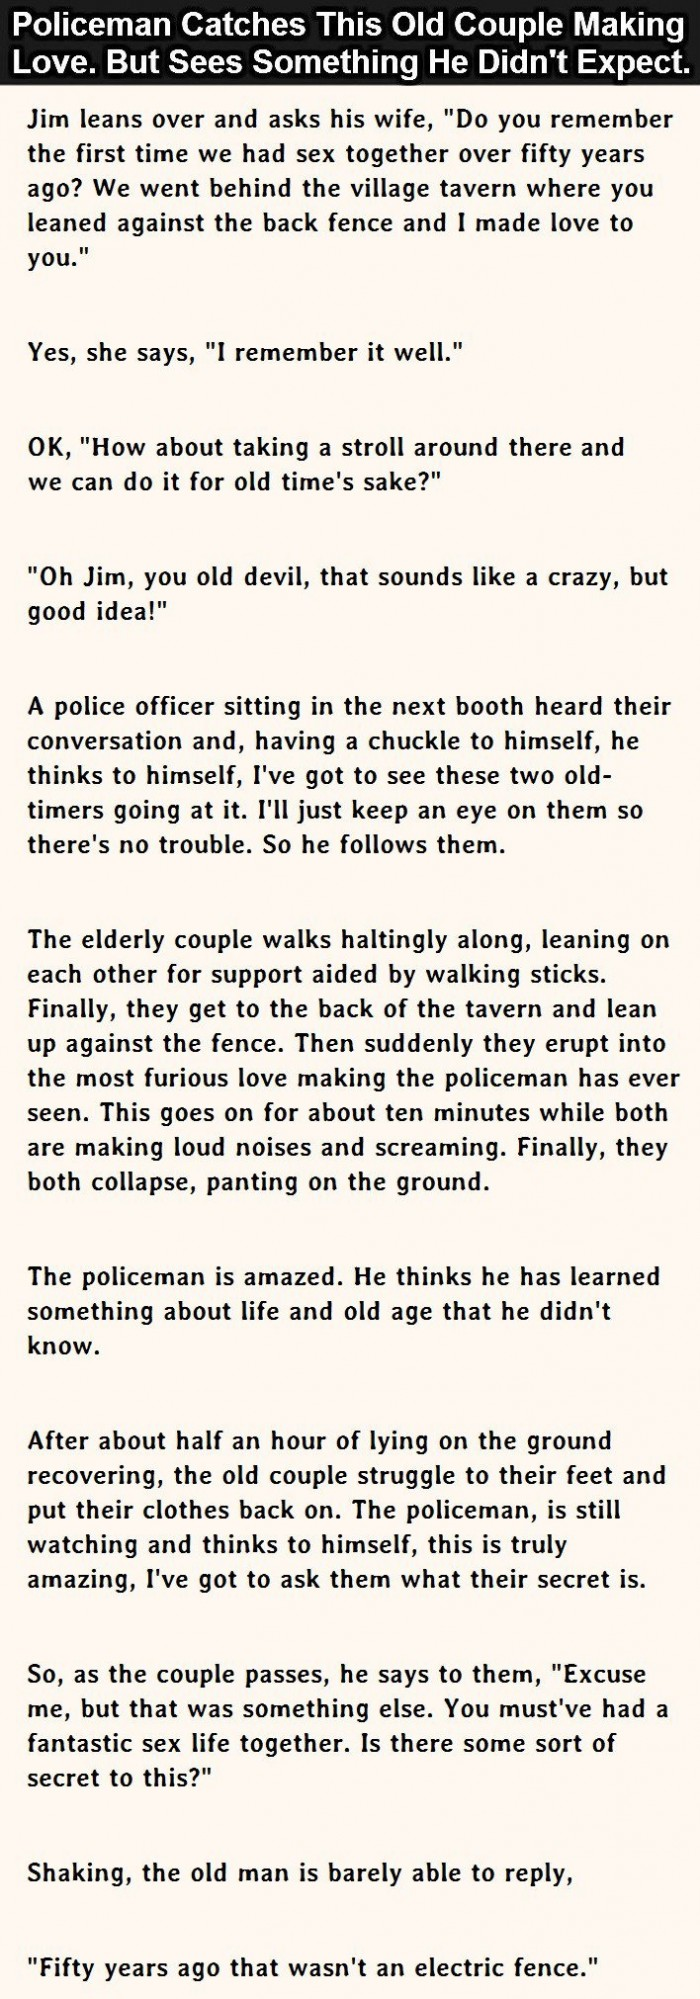 Policeman Catches Old Couple Making Love. But He Didn't Expect This.